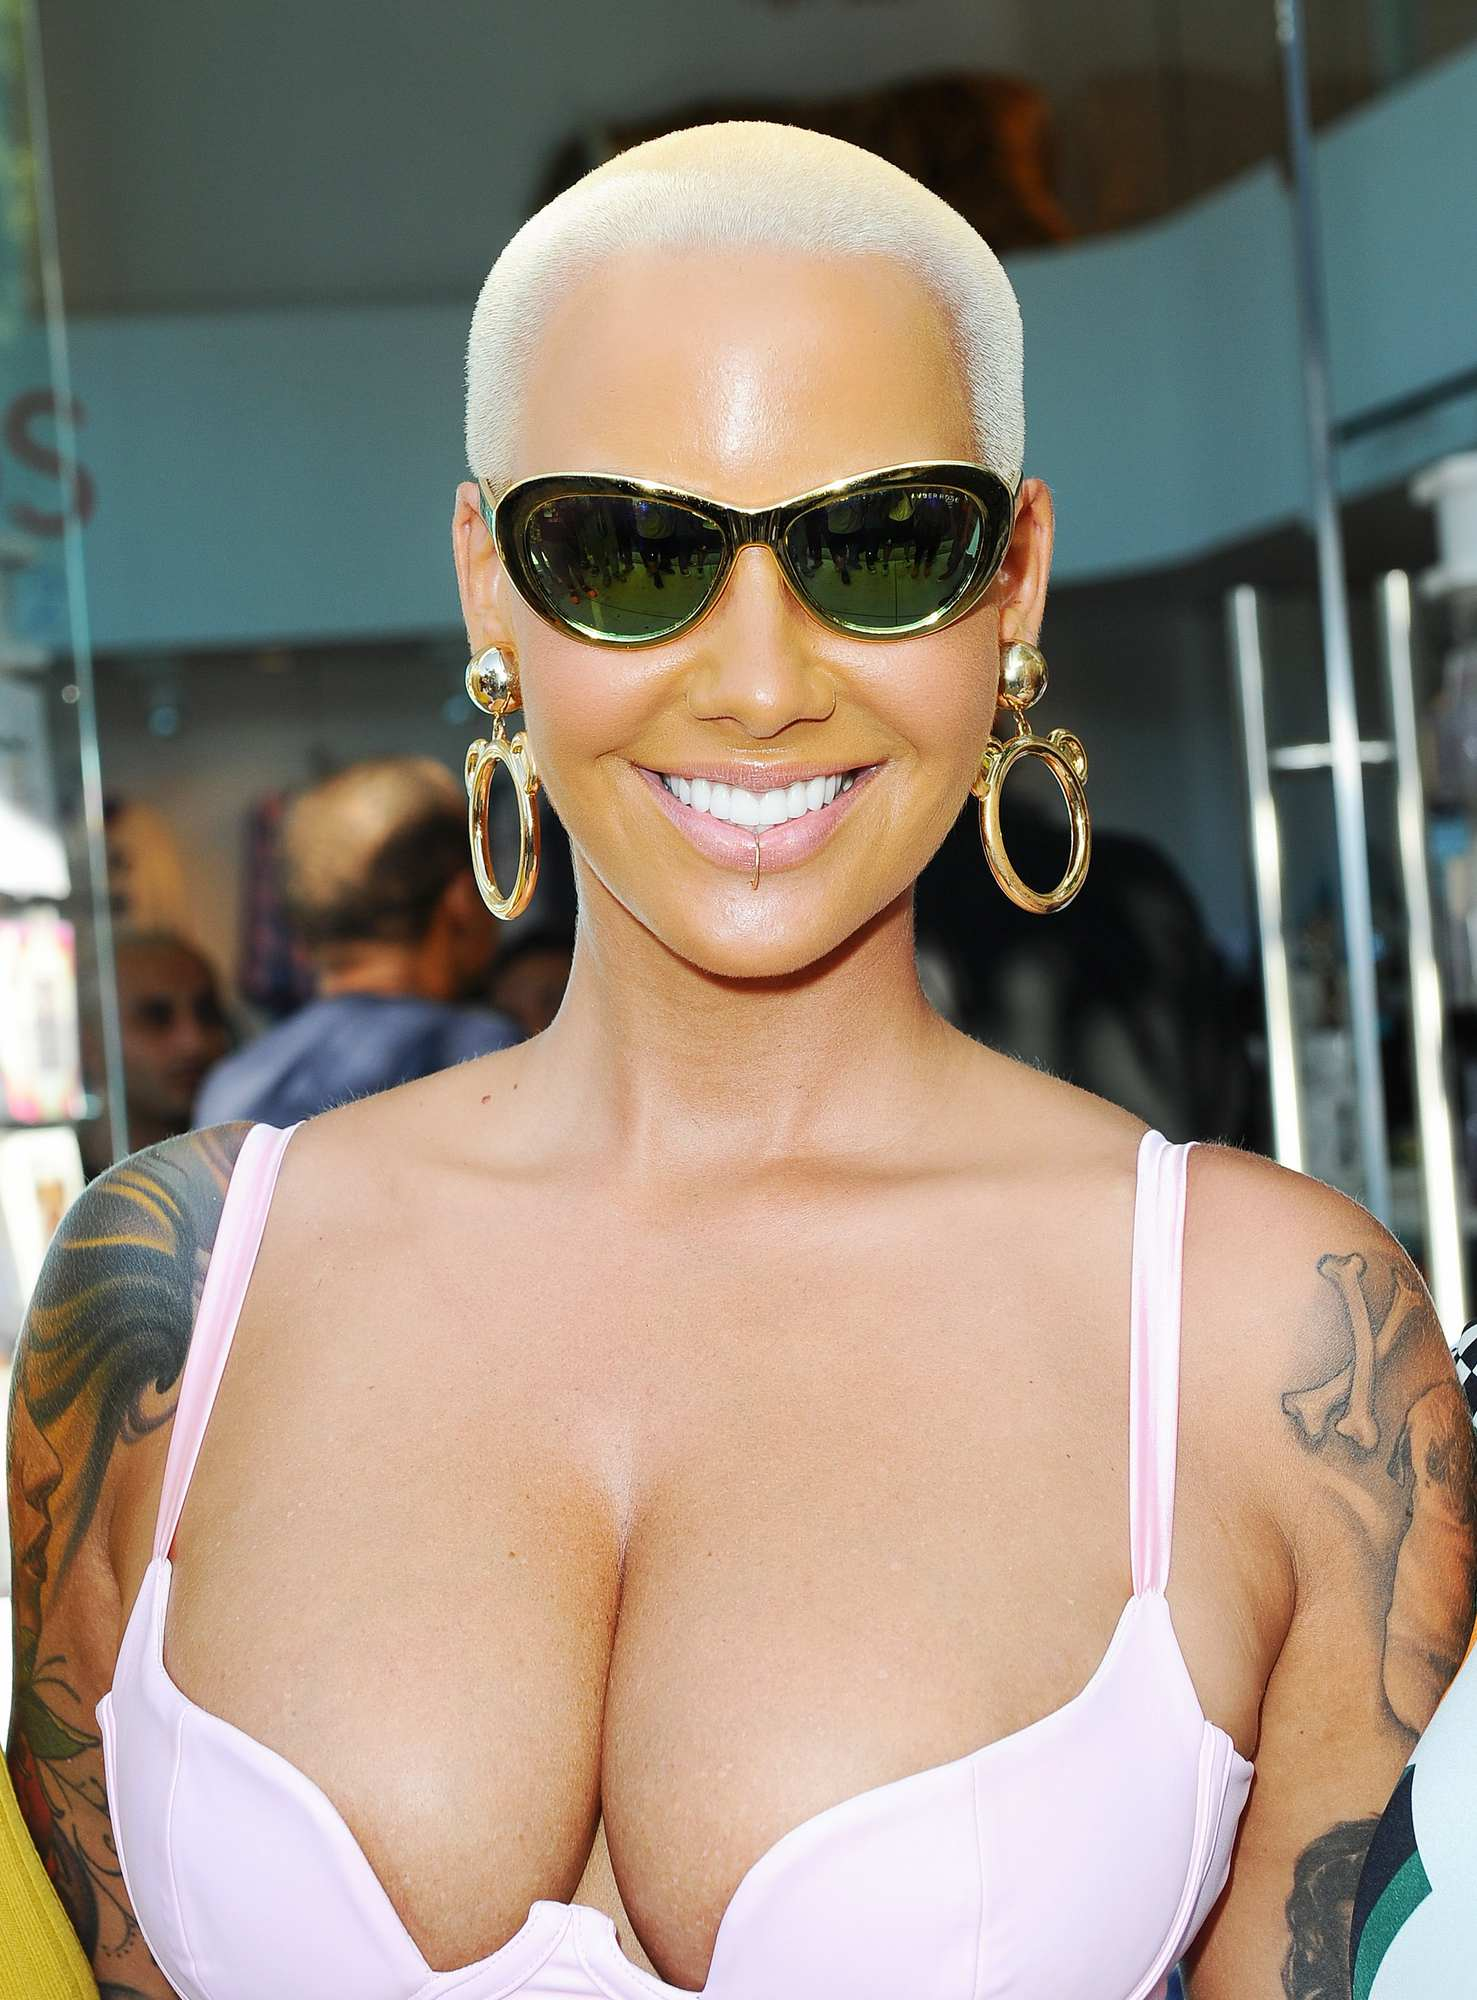 Speaking, would blac chyna and amber rose think